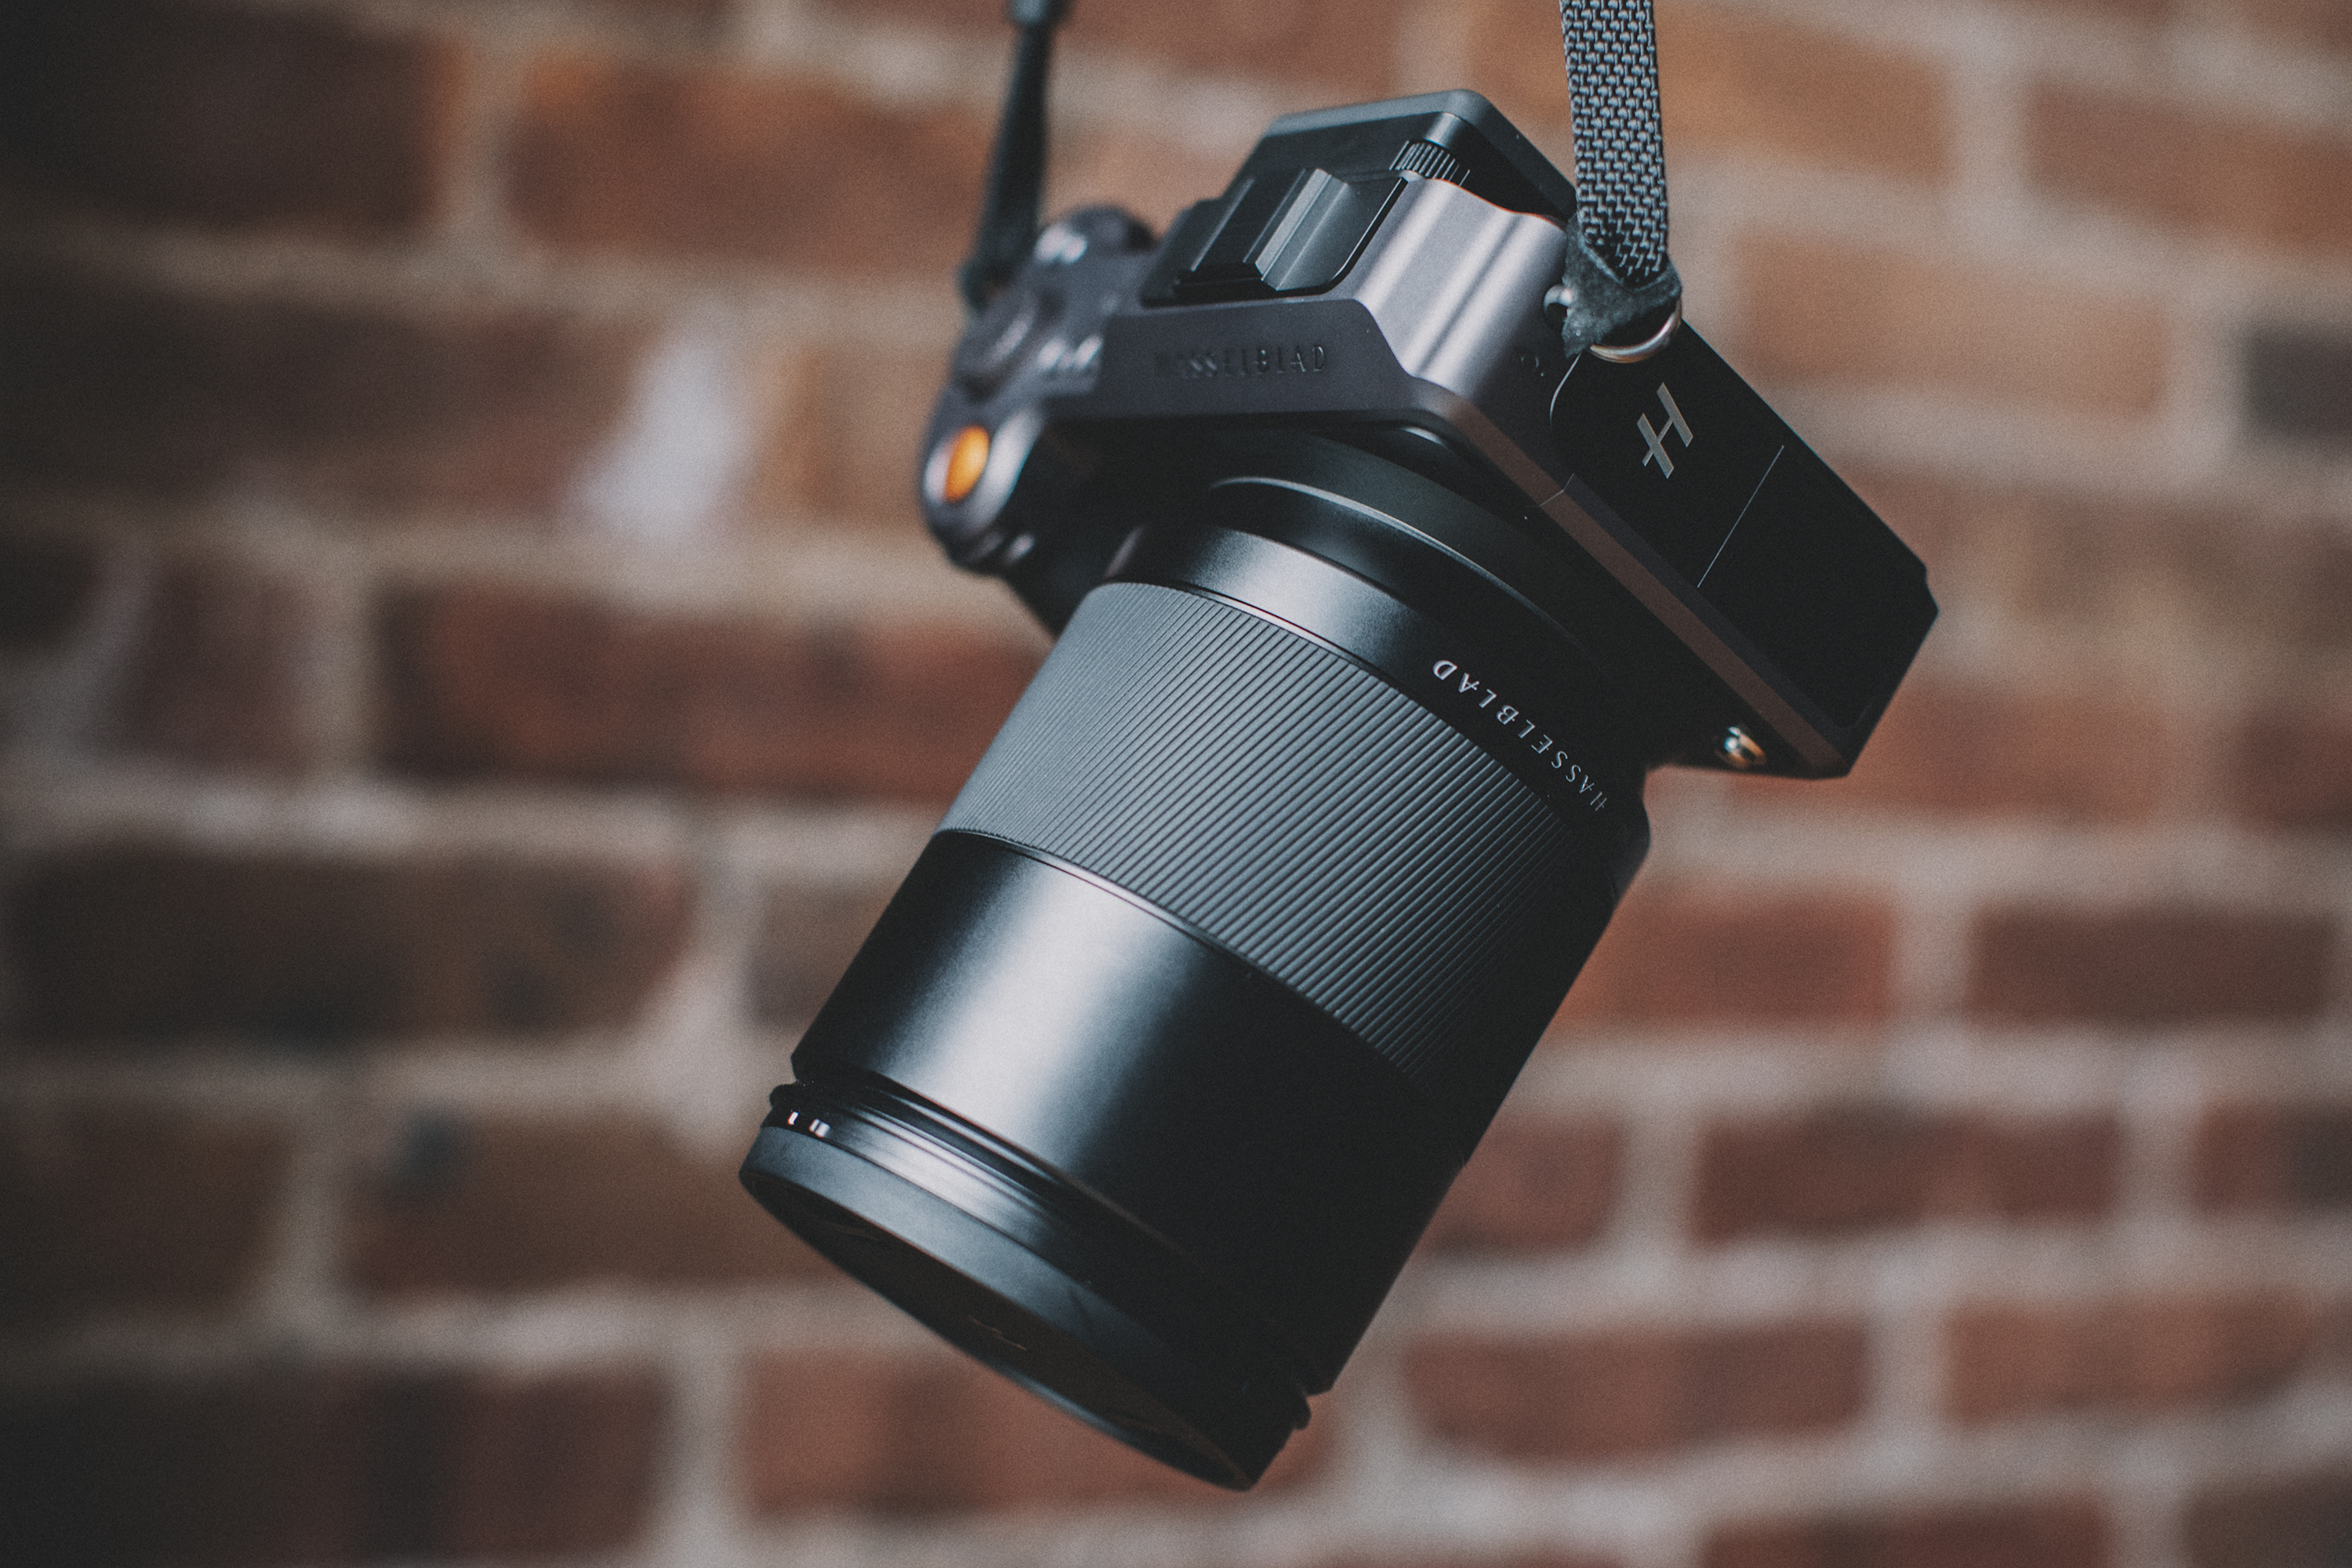 Hasselblad X1D II 50C Hasselblad X1D II 50C  out of the studio and into the streets – TechCrunch hasselblad X1D II 50C 001